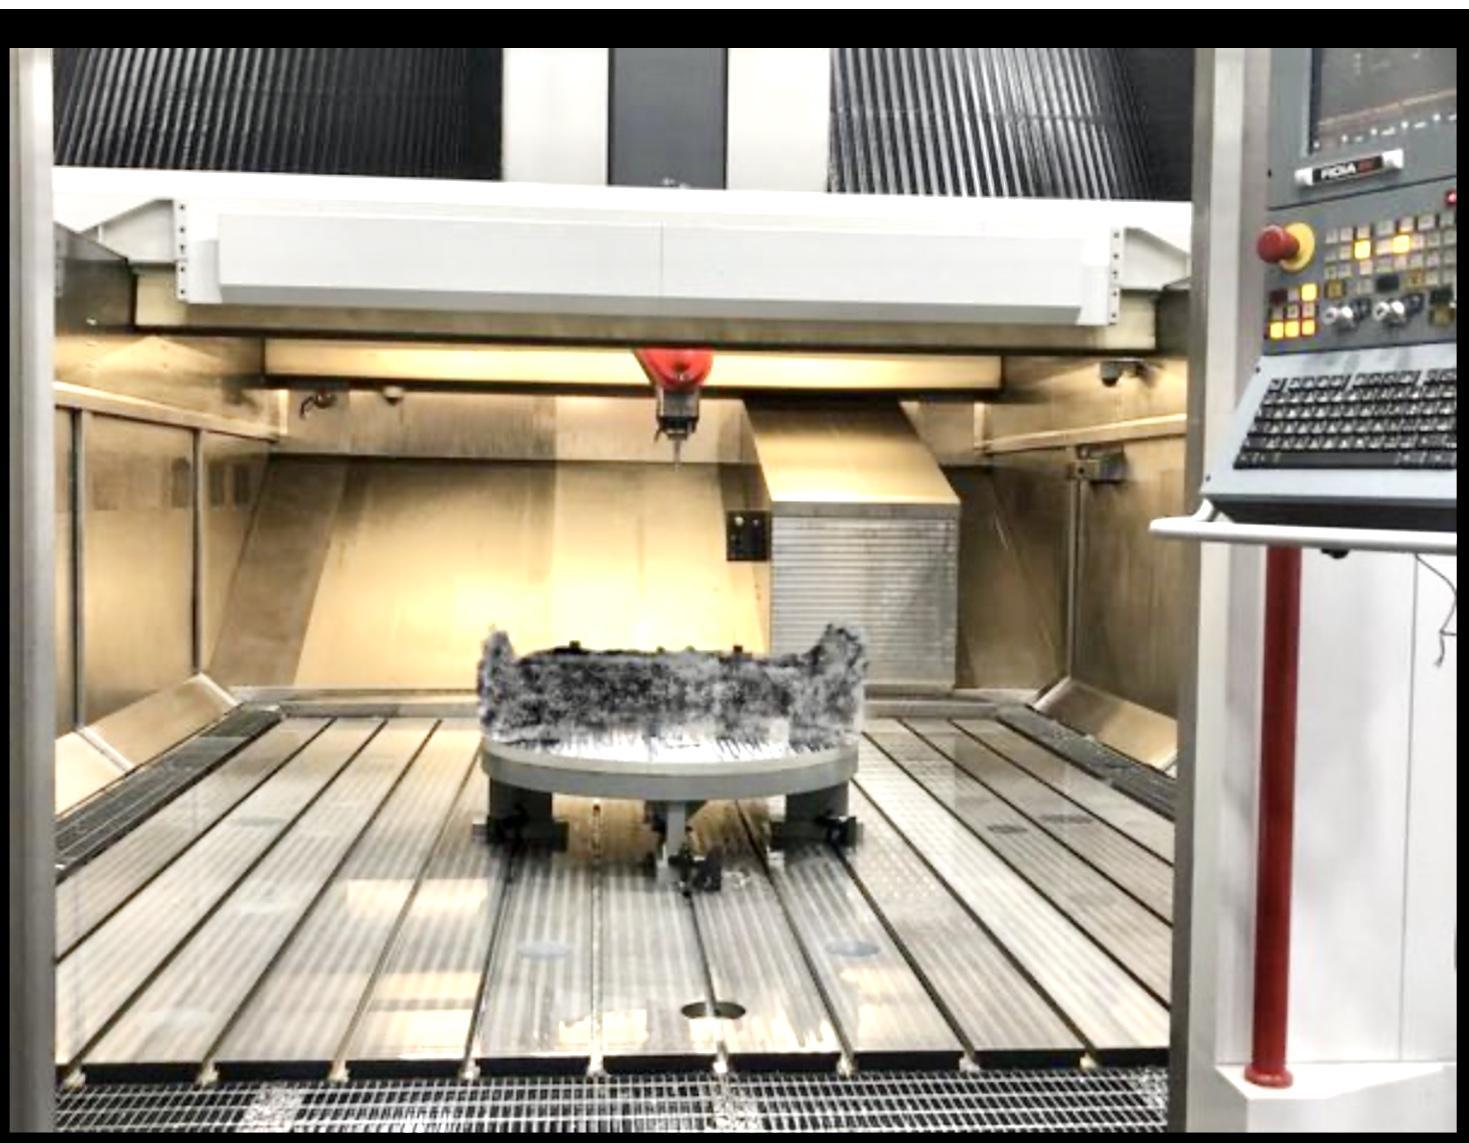 2016 5 axis Fidia high speed gantry